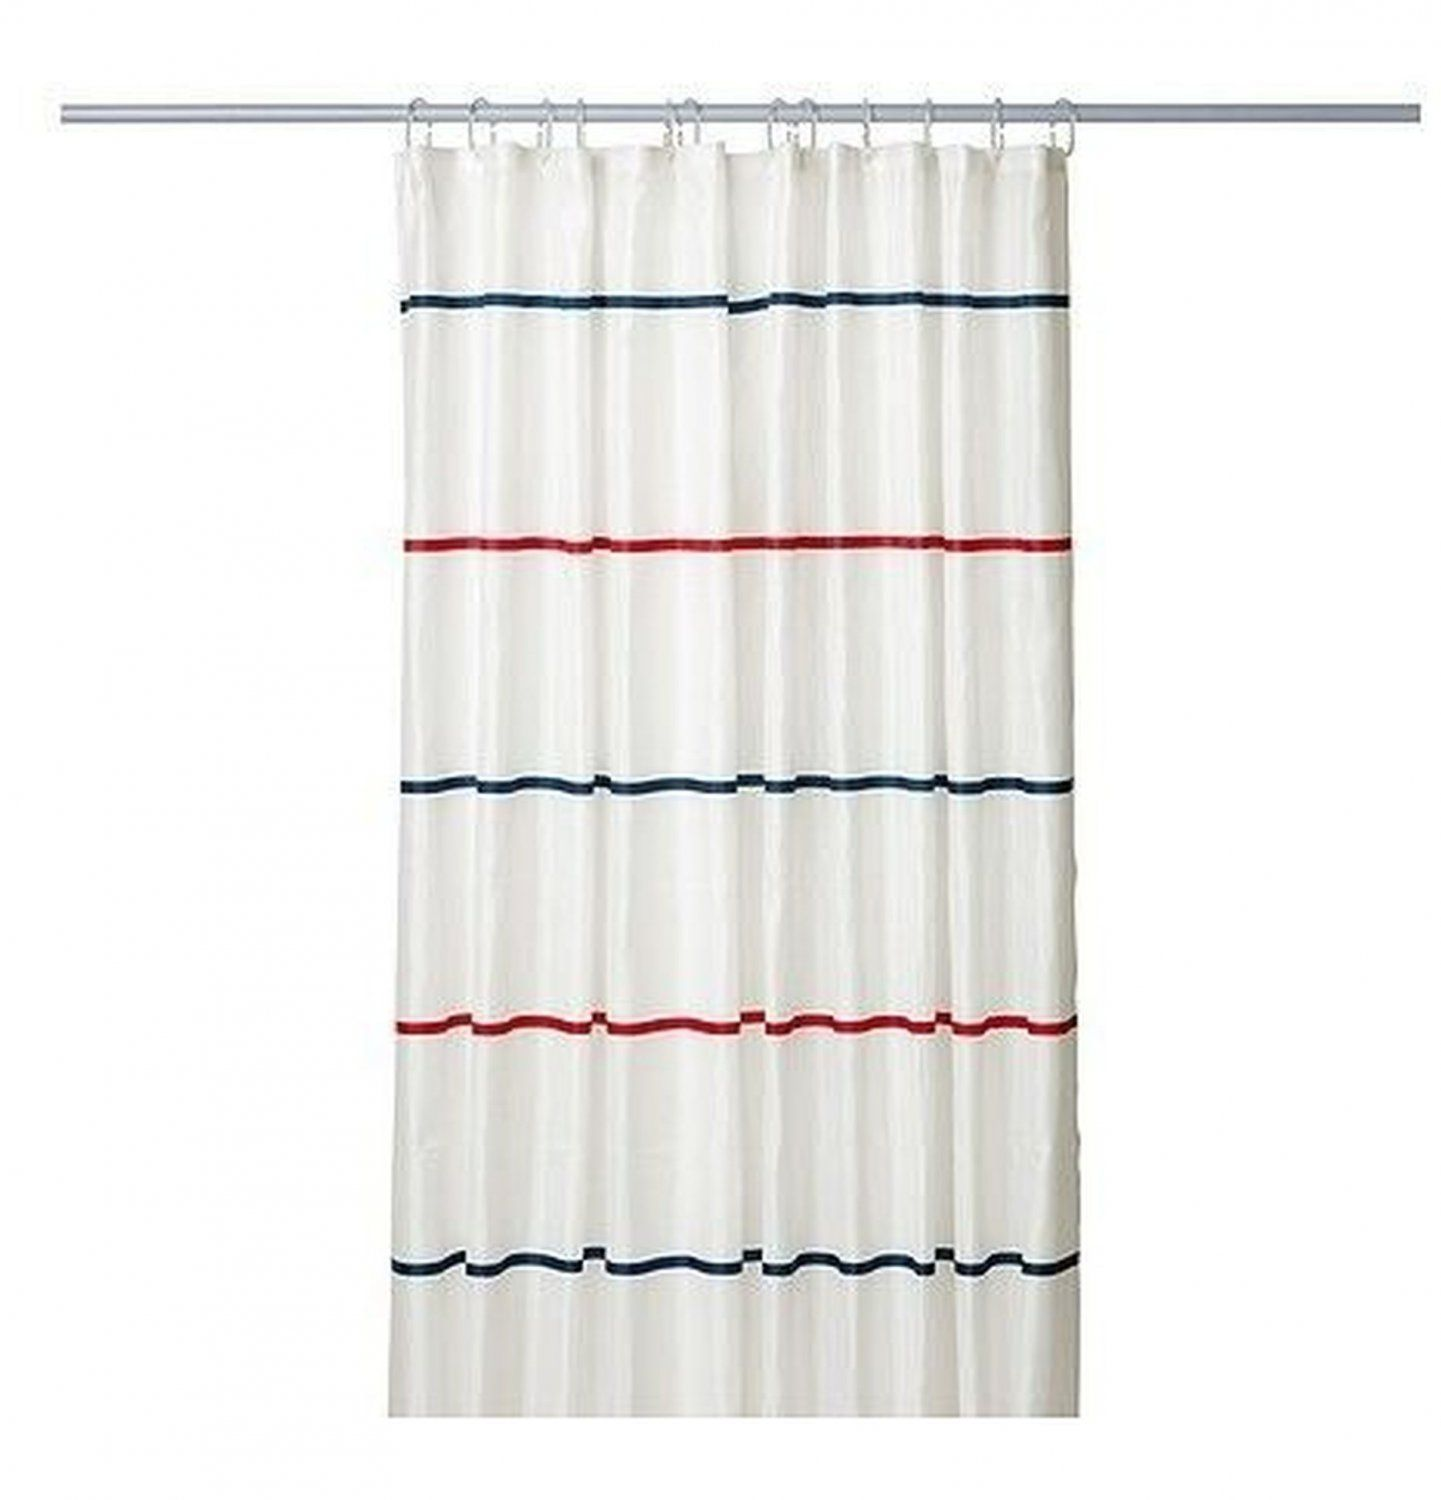 Ikea Myrviken Fabric Shower Curtain Blue Red White Stripe Nautical